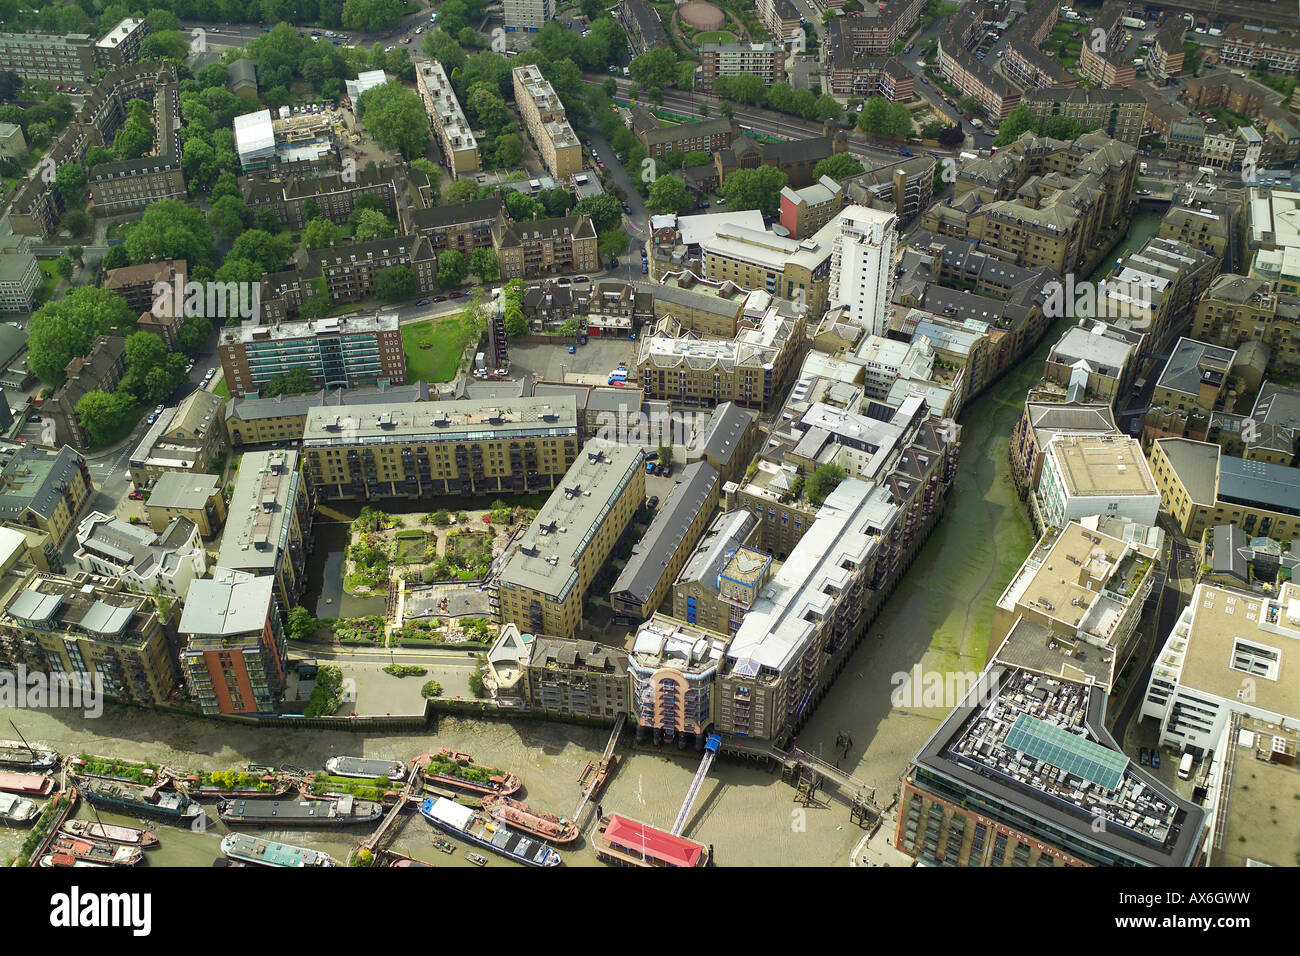 Aerial view of the Shad Thames in the Upper Pool area of London the River Thames near Tower Bridge Stock Photo